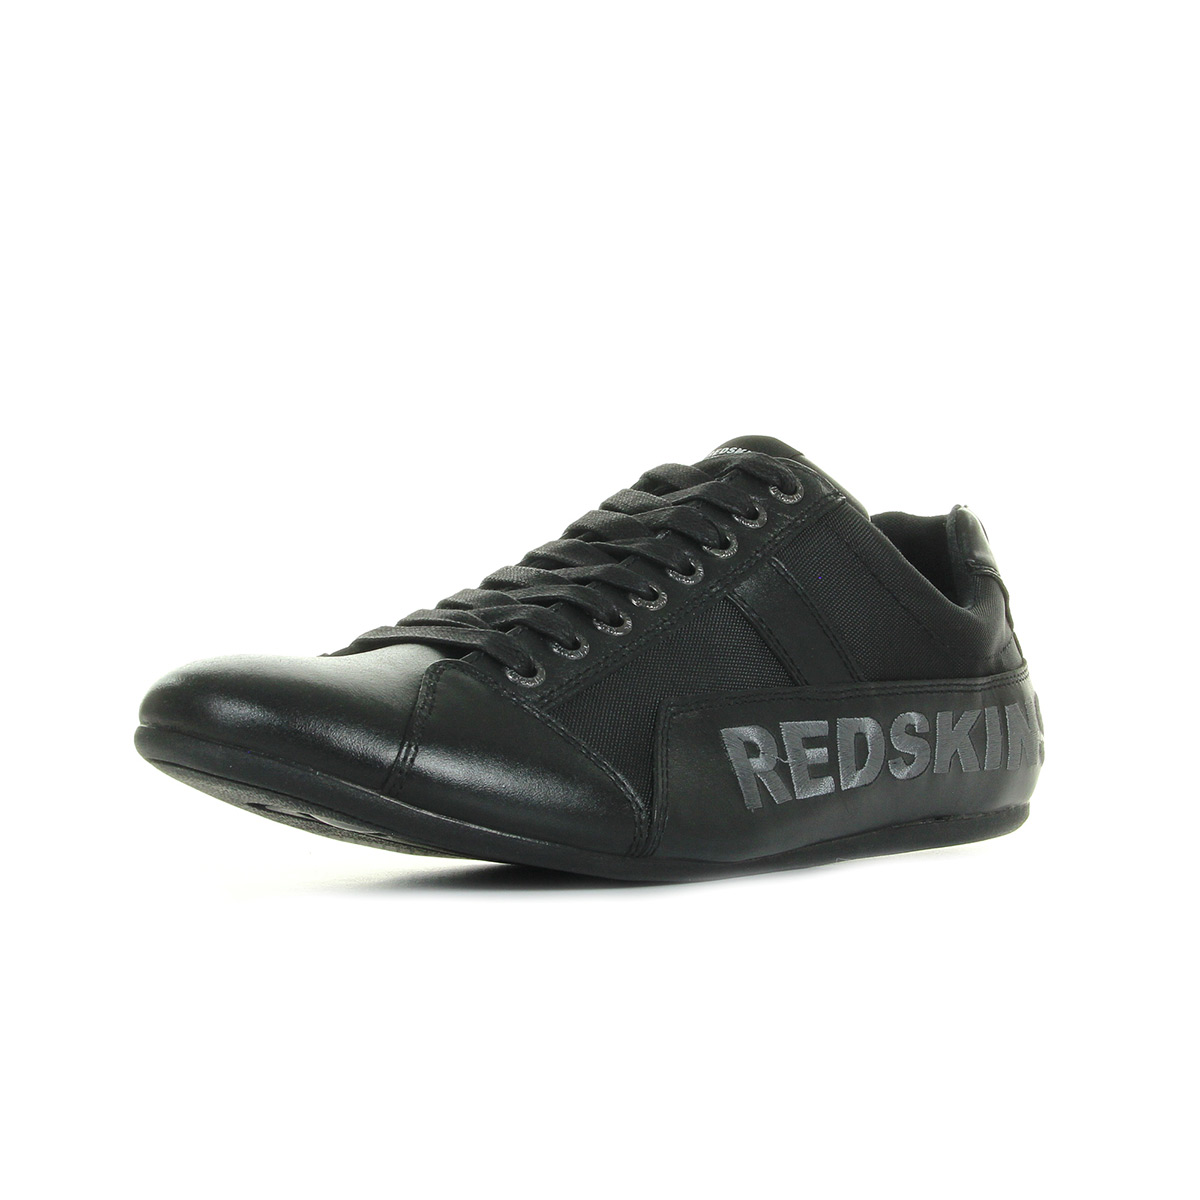 Chaussures Redskins noires Casual homme